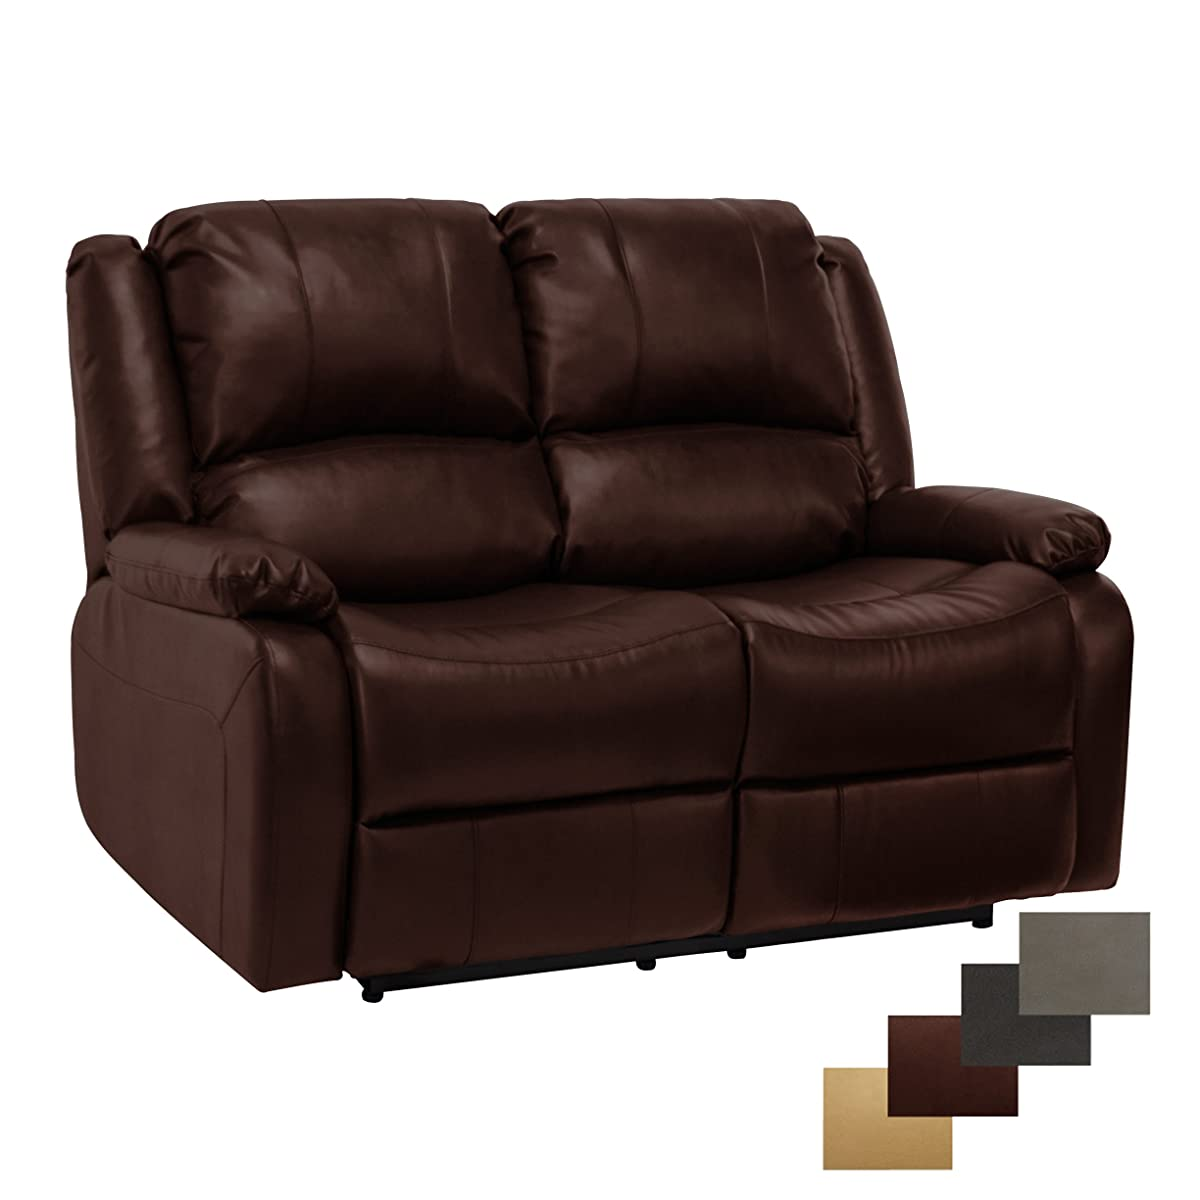 "RecPro Charles Collection | 58"" Double Recliner RV Sofa 